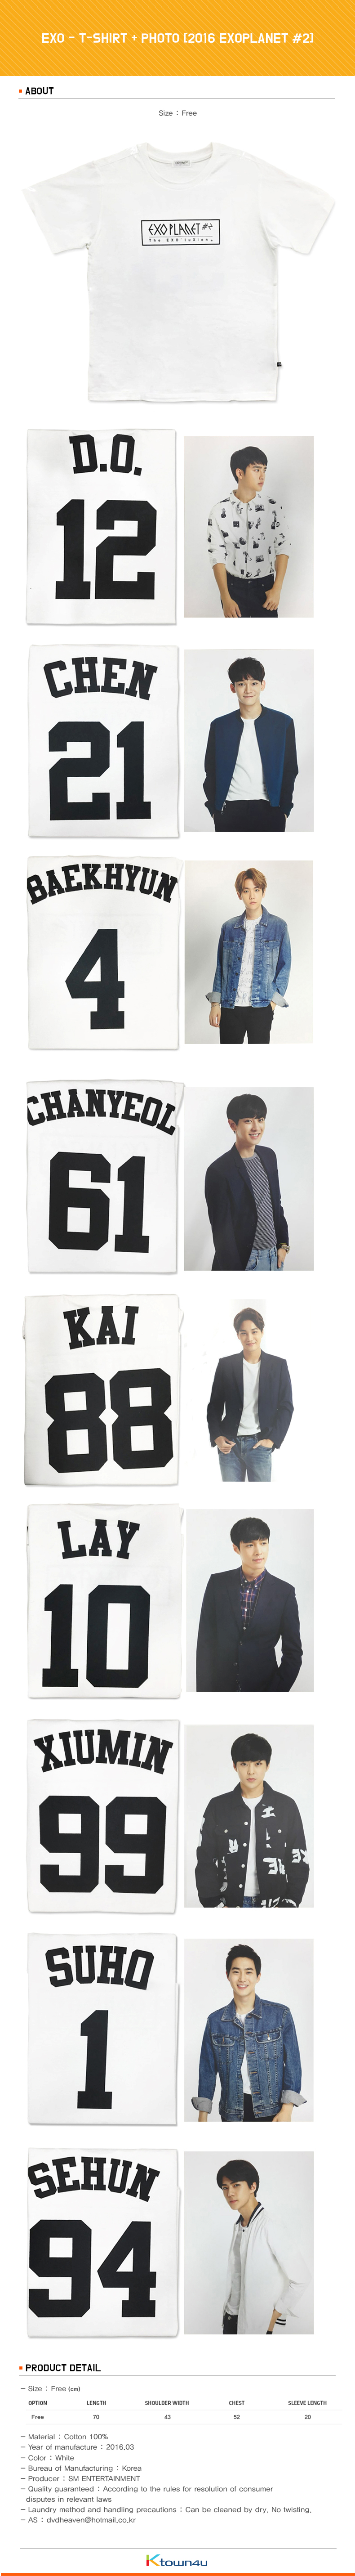 EXO - T-SHIRT + PHOTO [EXOPLANET #2]